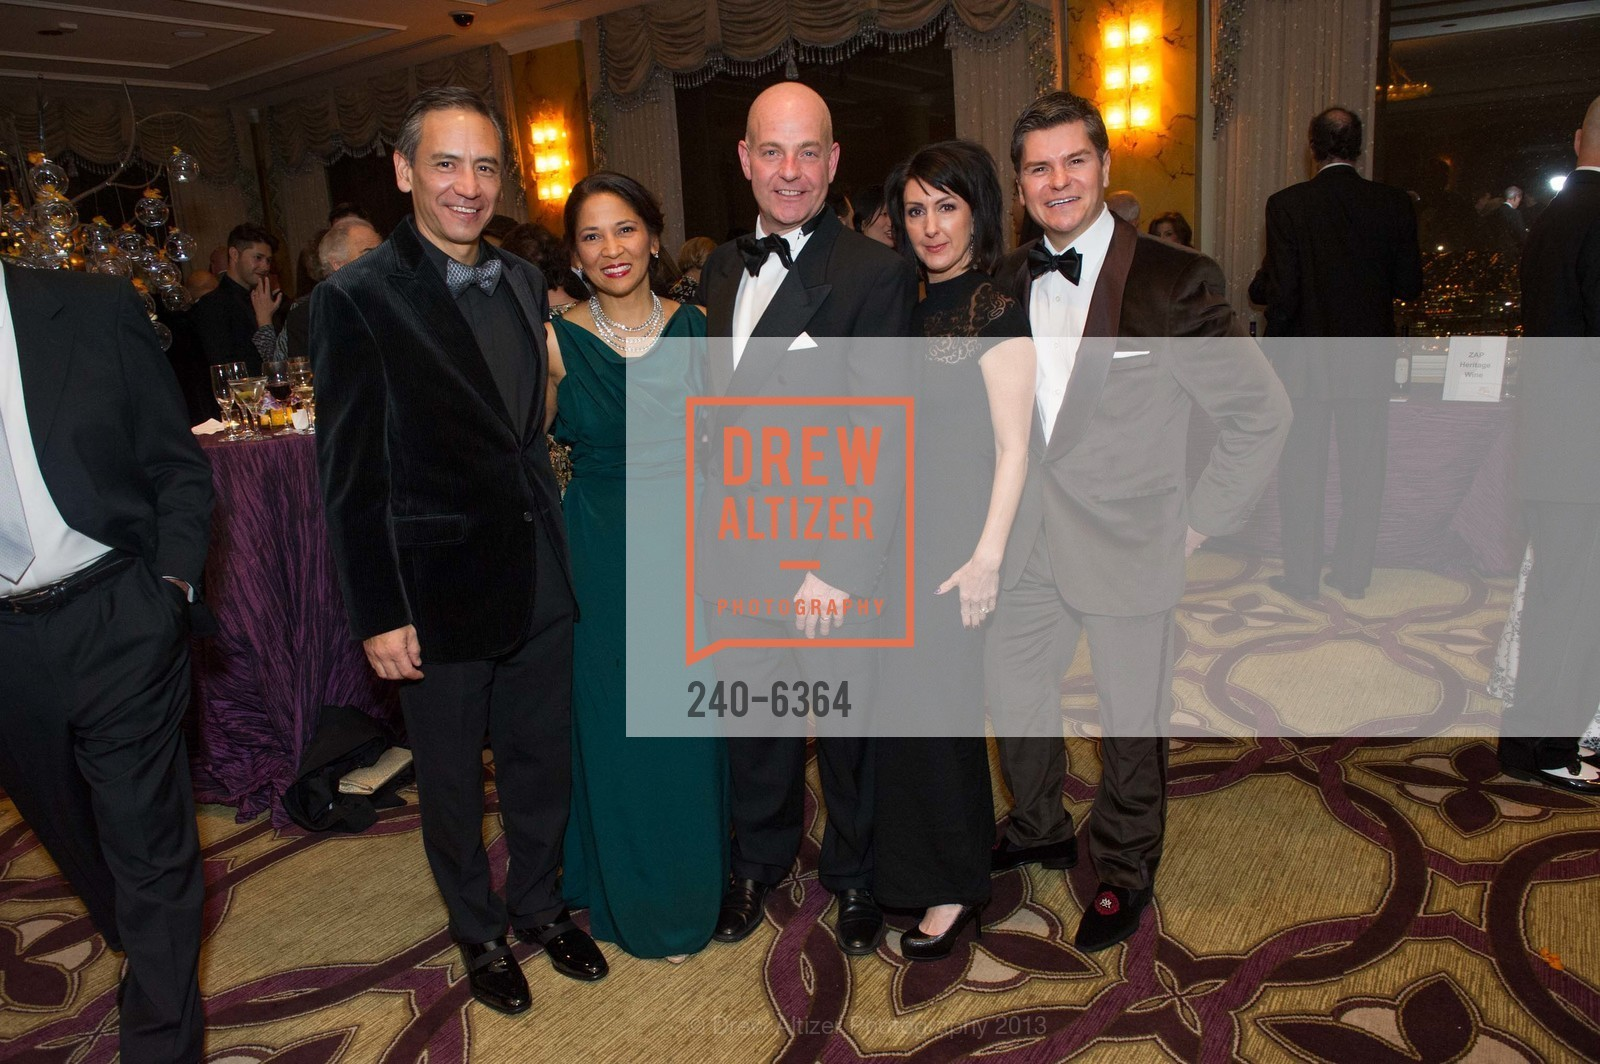 Charles Gee, Darlene Fong, Kevin Causey, Christine Gee, Chris Meza, 25th Anniversary Holiday HOB NOB ON THE HILL, US, December 6th, 2013,Drew Altizer, Drew Altizer Photography, full-service agency, private events, San Francisco photographer, photographer california